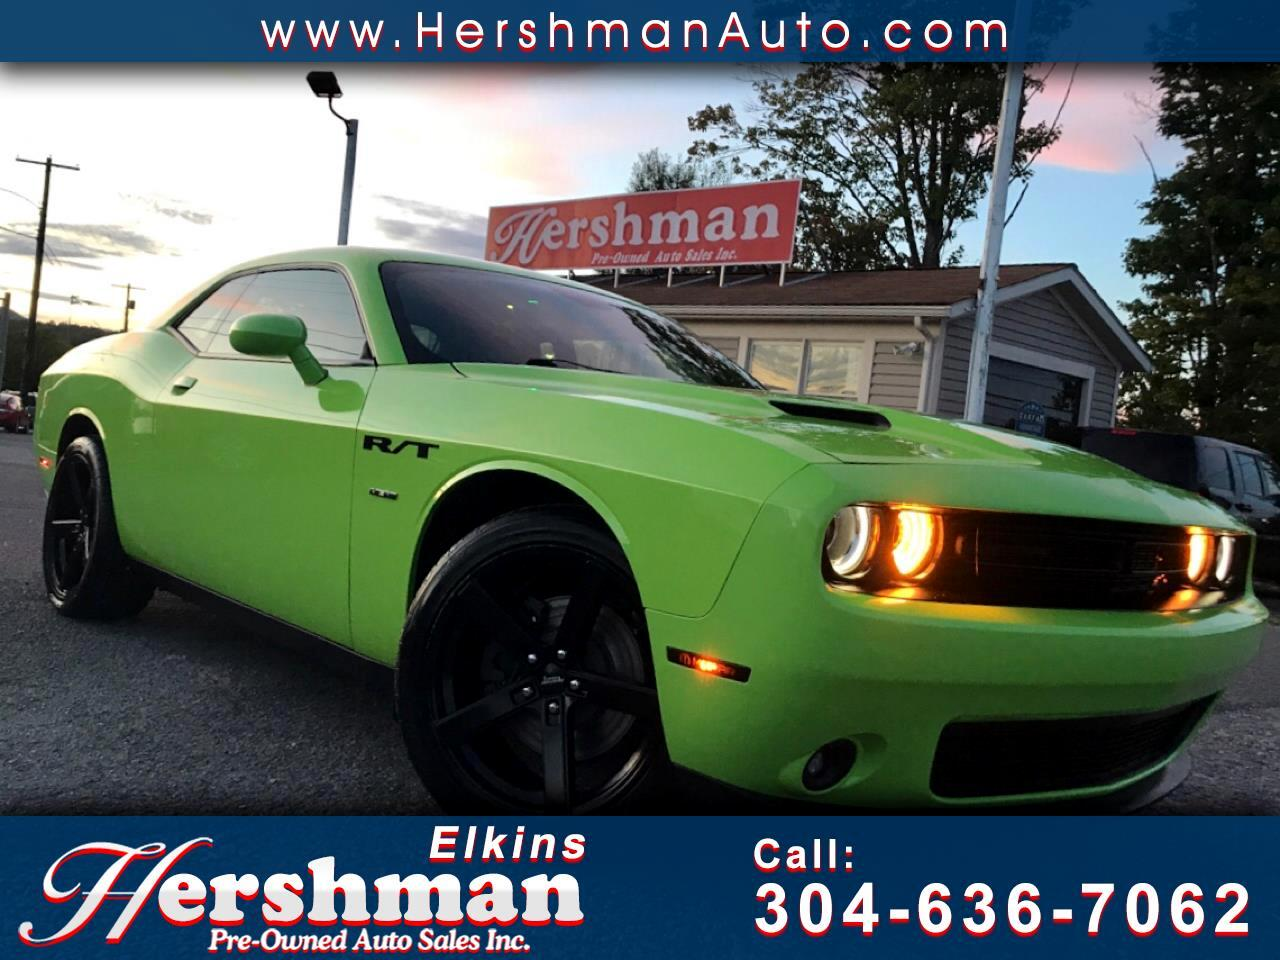 Cars For Sale In Wv >> Used Cars For Sale Elkins Wv 26241 Hershman Pre Owned Auto Sales